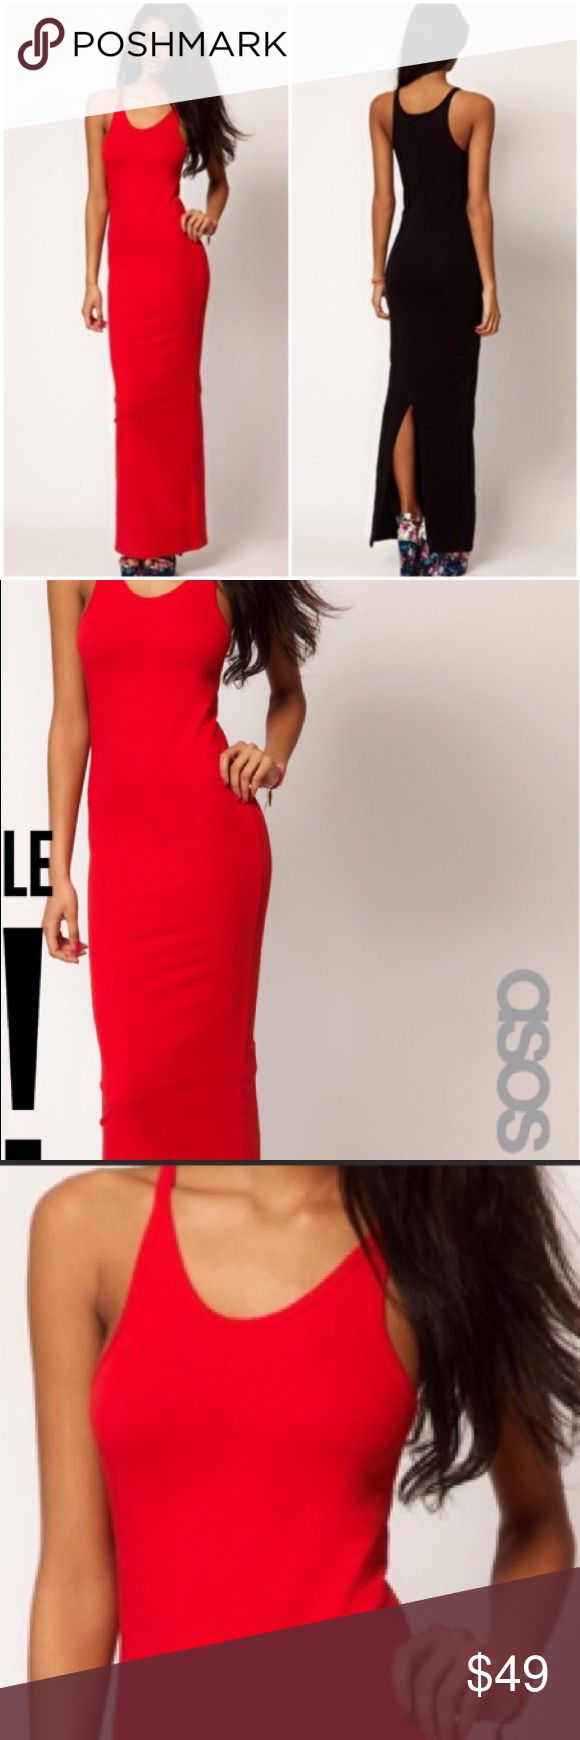 """NEW ASOS RED HIGH SLIT VERY HOT/SEXY MAXI DRESS THIS IS THE COOLEST DRESS BY ASOS! IT NEW CONDITION WITH SEXY HIGH BACK. SLIT~NOT FOR SHORTY'S BECAUSE IT'S TO THE FLOOR IN ME AT 5'9"""".HIGH SLIT ADDS TO THE HOTNESS!! MEDIUM BUT FITS TALL SMALL TOO. ON LINE PURCHASE SO NO TAGS ASOS Dresses Maxi"""